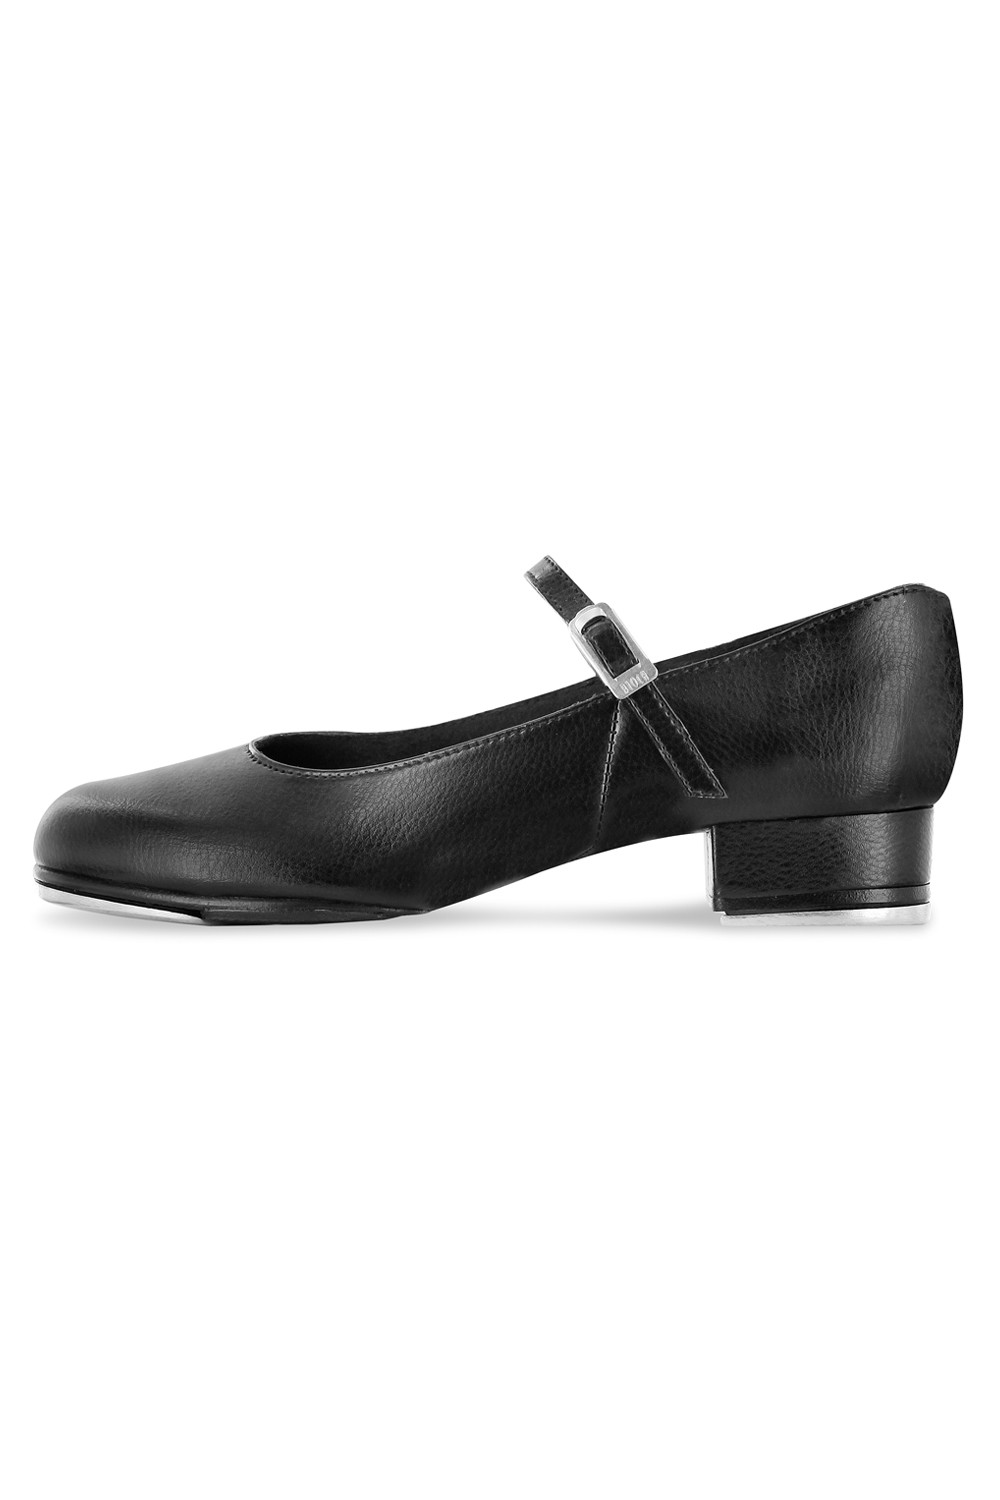 Kelly Women's Tap Shoes